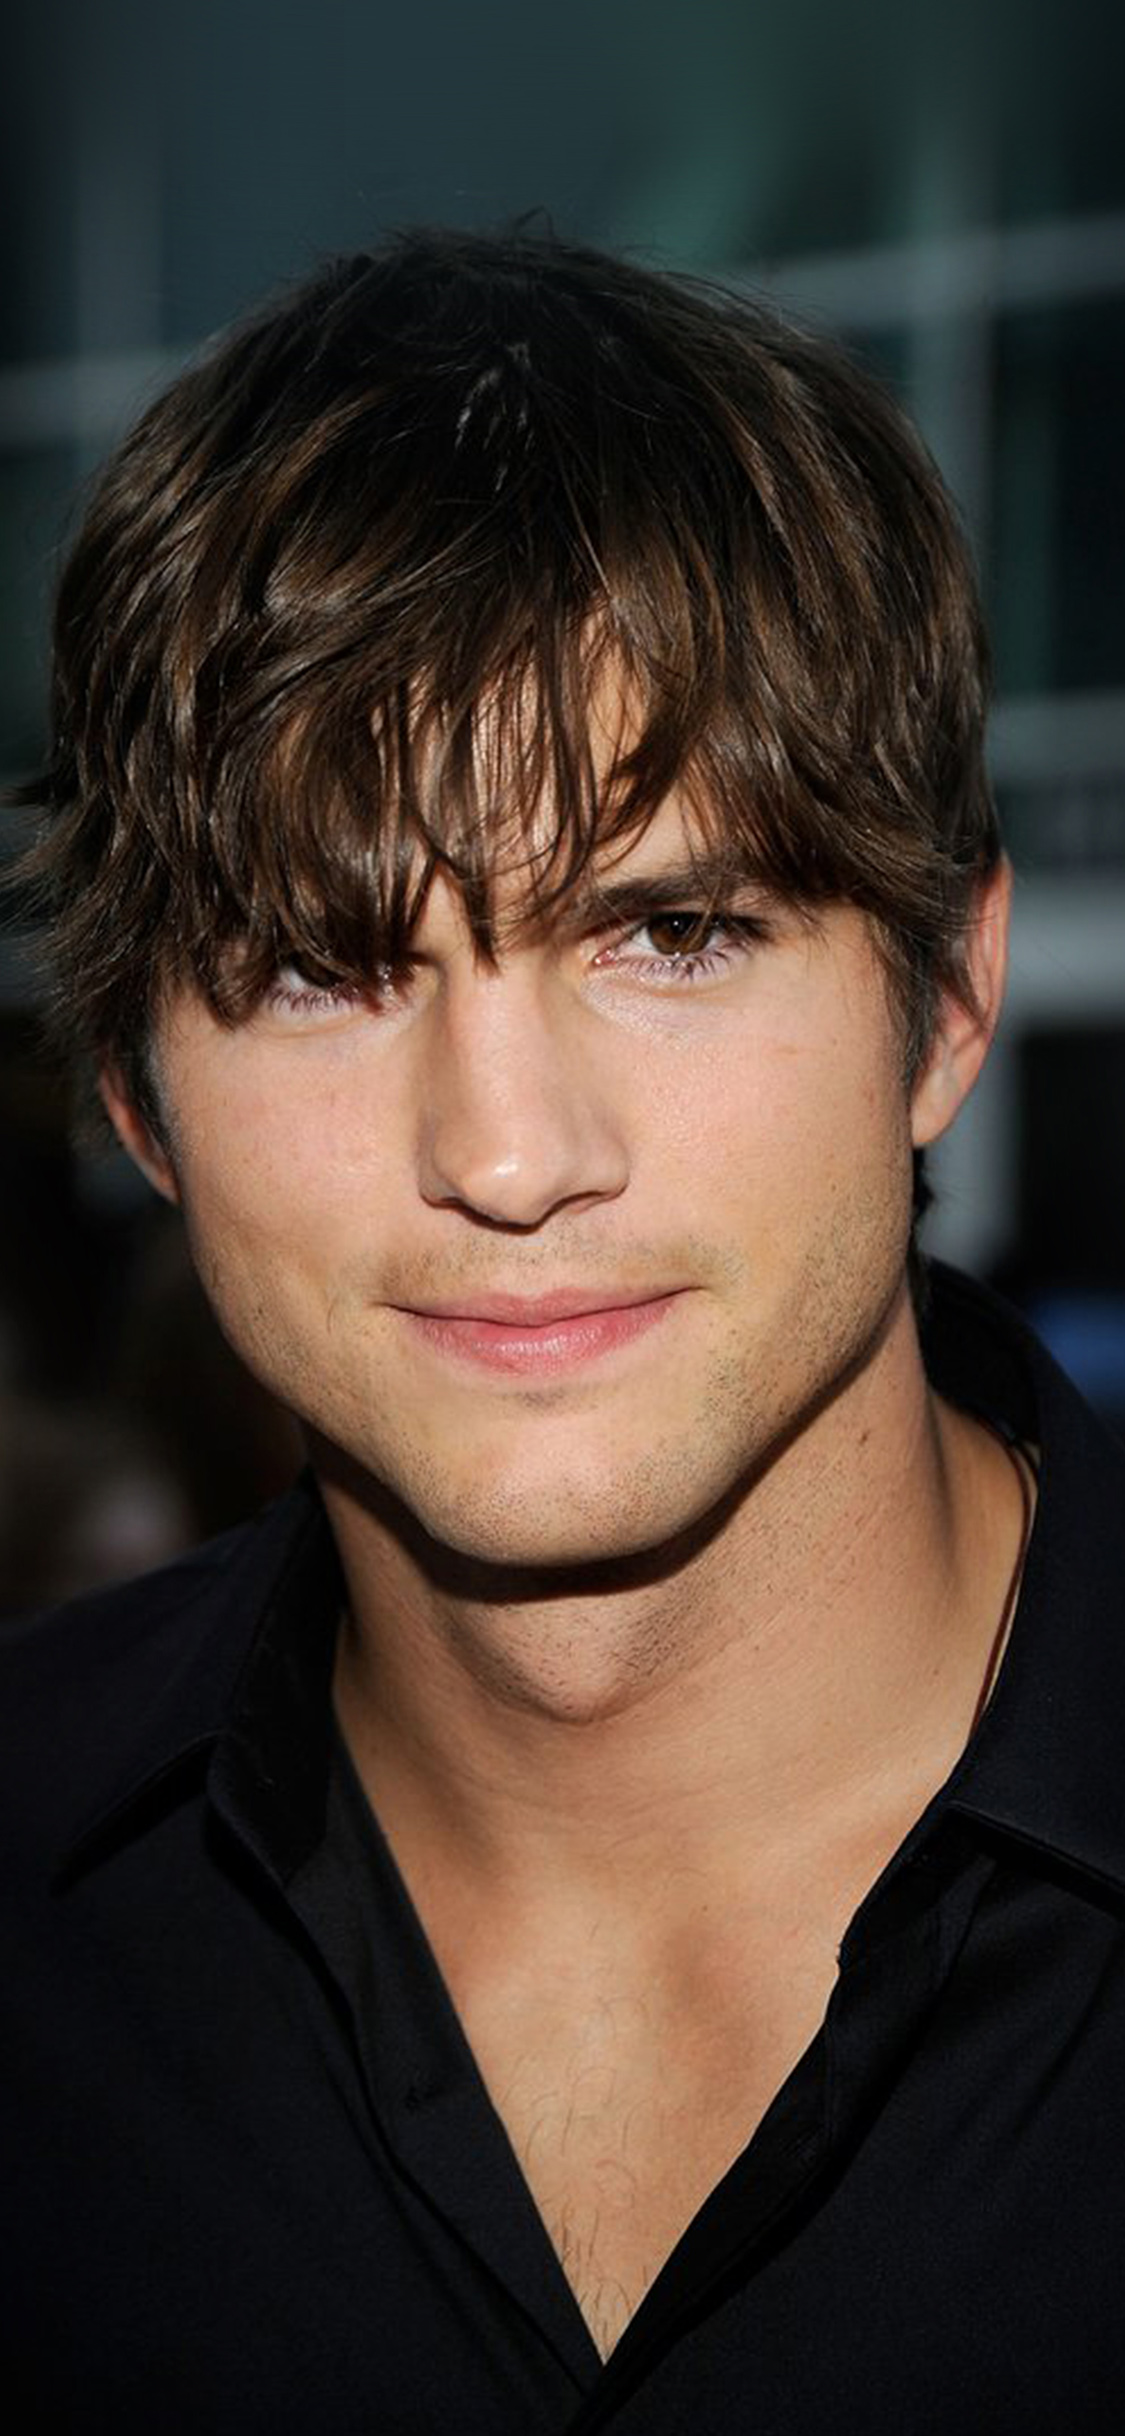 iPhoneXpapers.com-Apple-iPhone-wallpaper-hm00-ashton-kutcher-handsome-hollywood-actor-film-celebrity